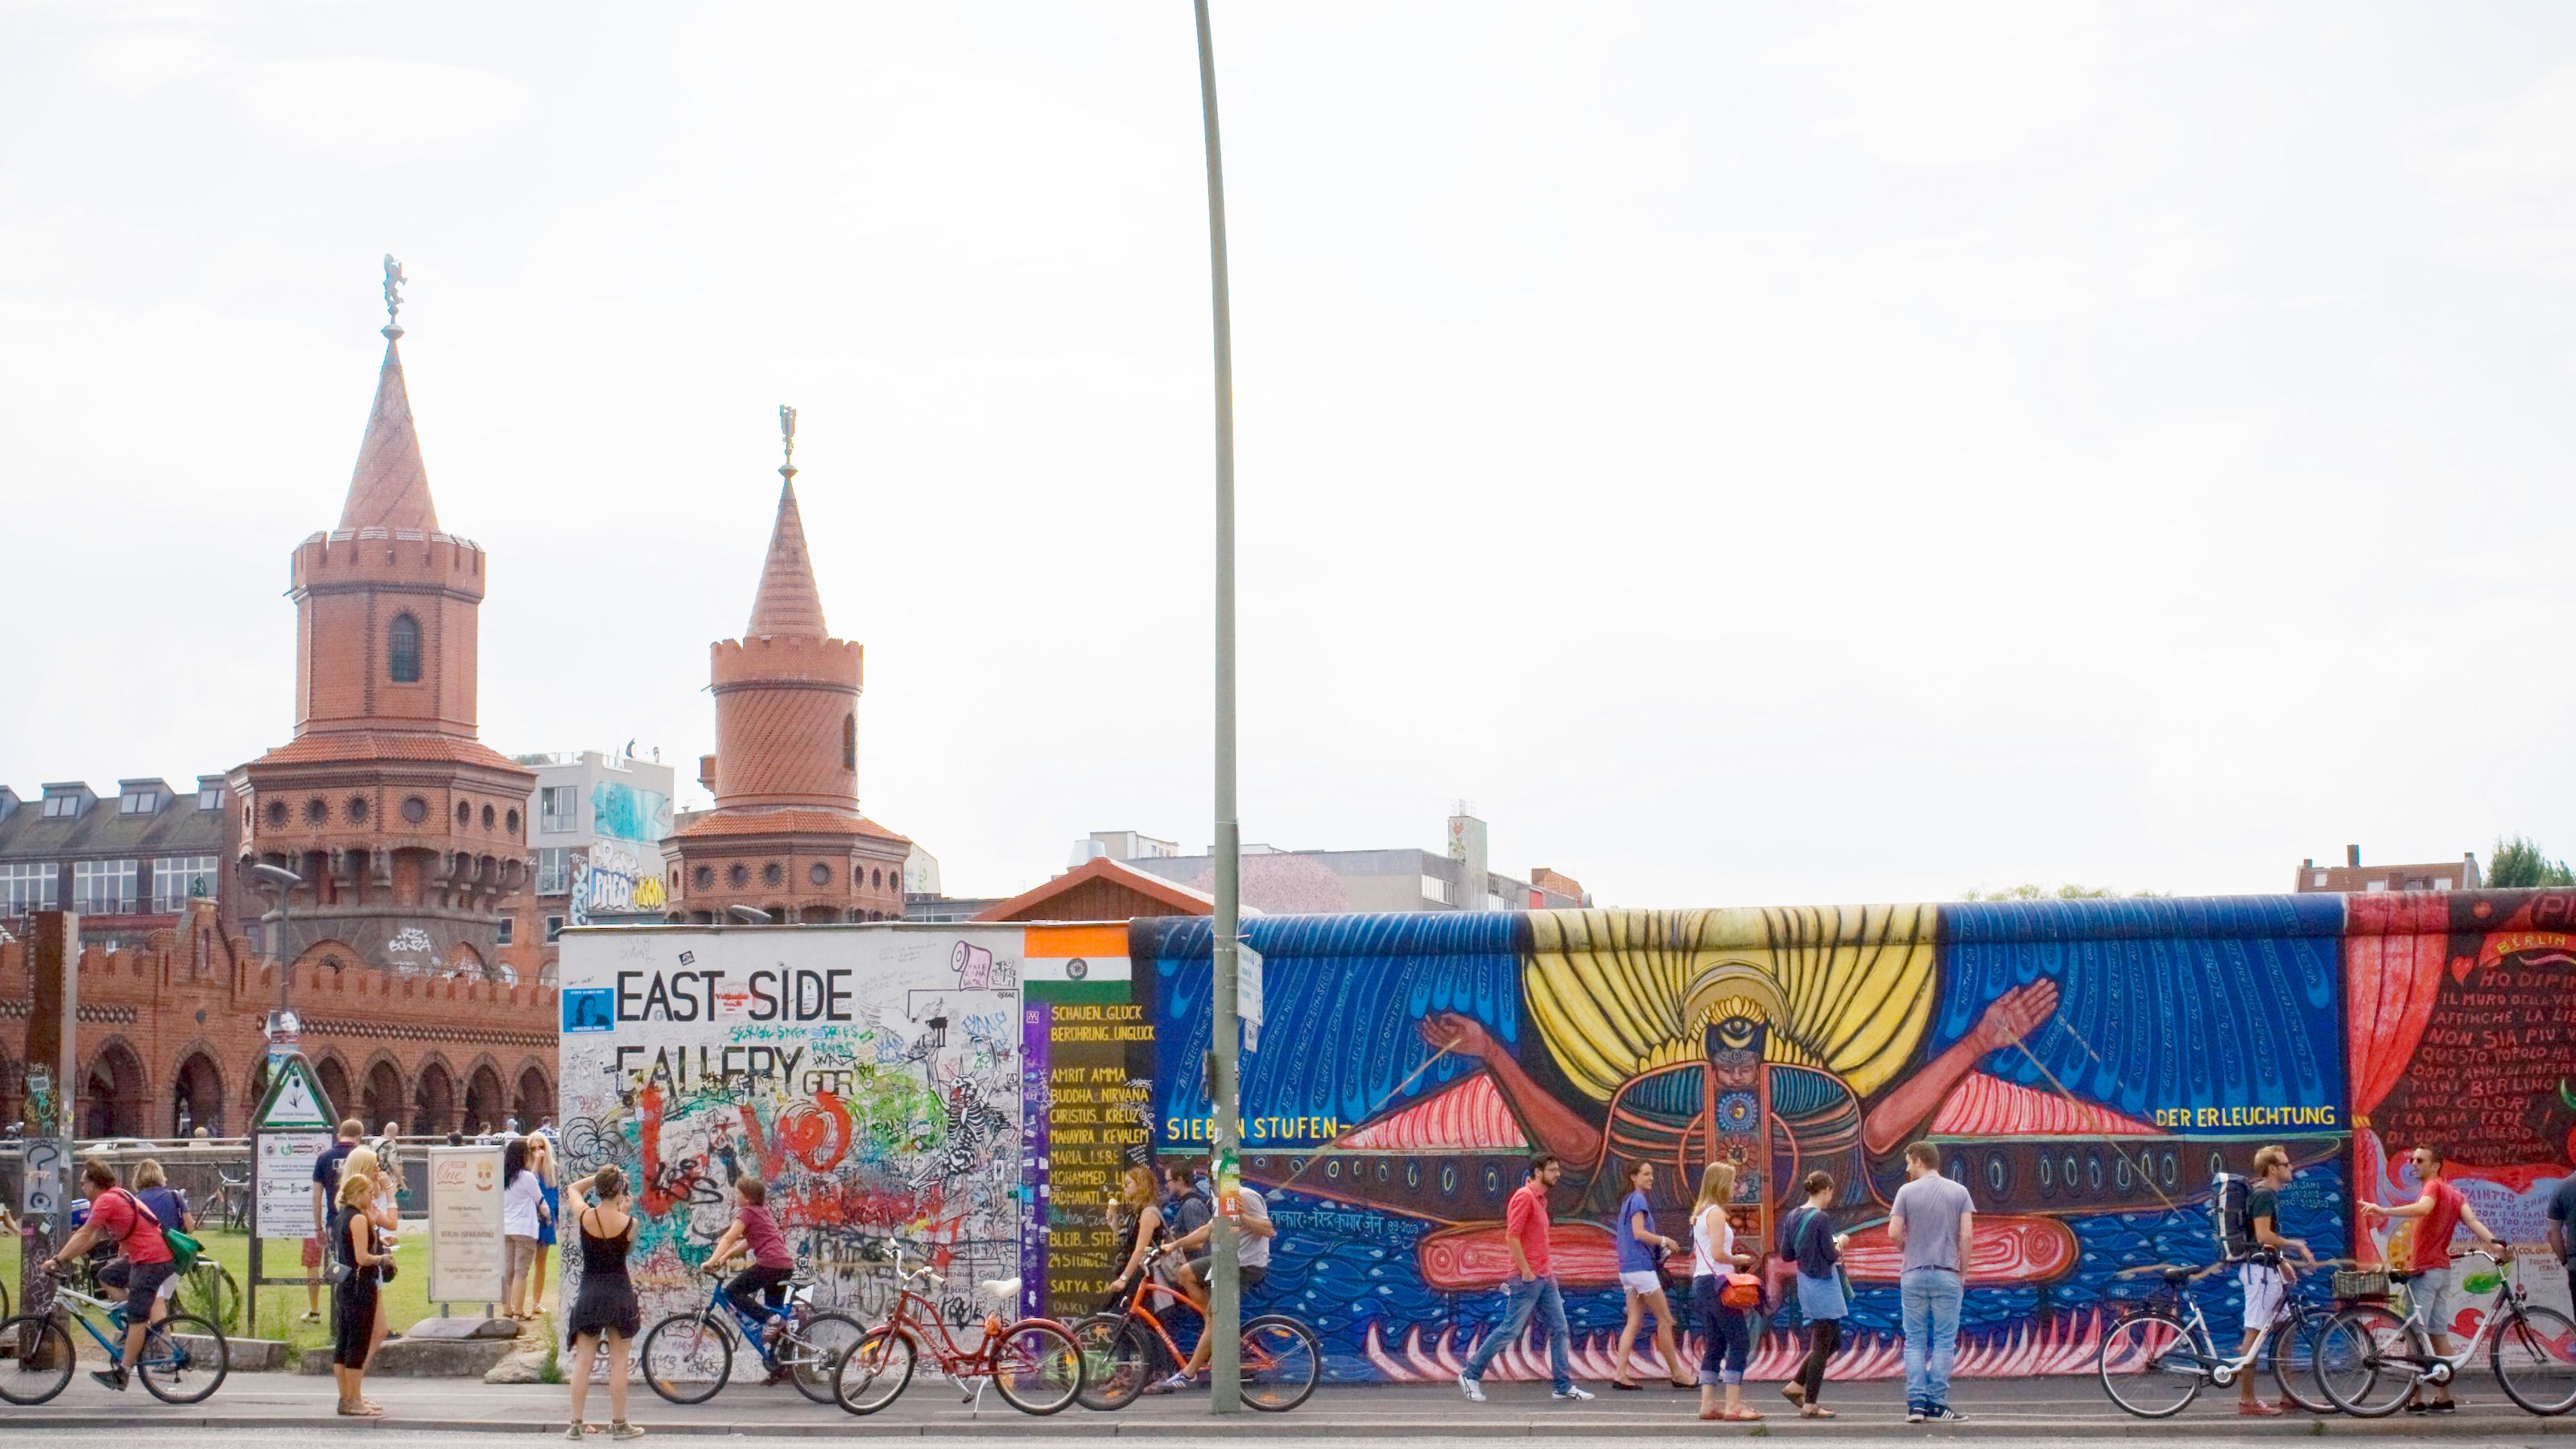 Murals on the remains of the Berlin Wall